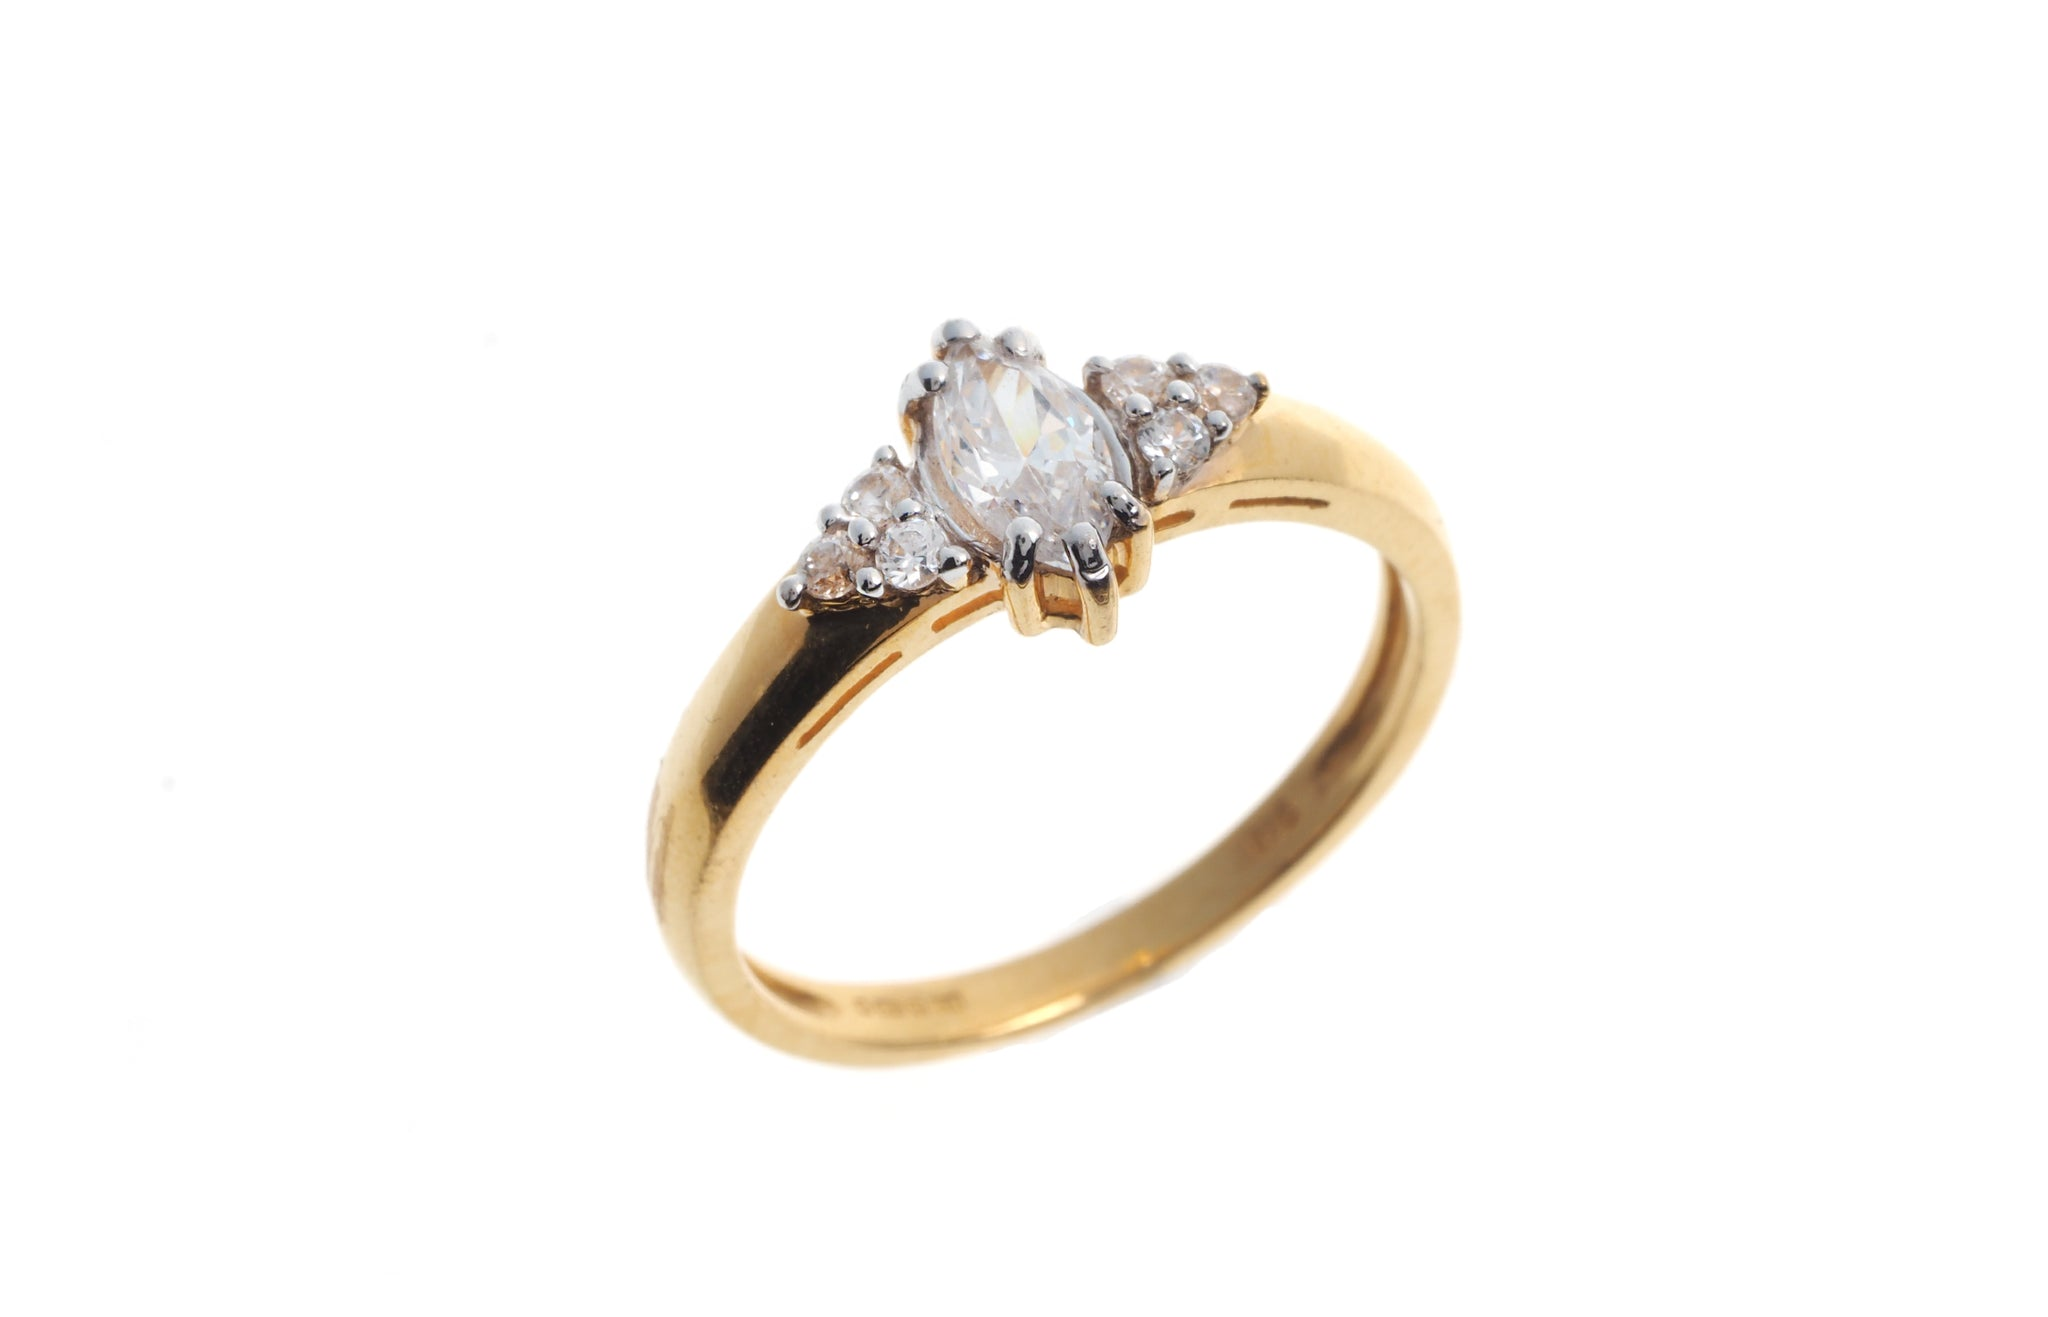 22ct Gold Cubic Zirconia Engagement Ring LR14581